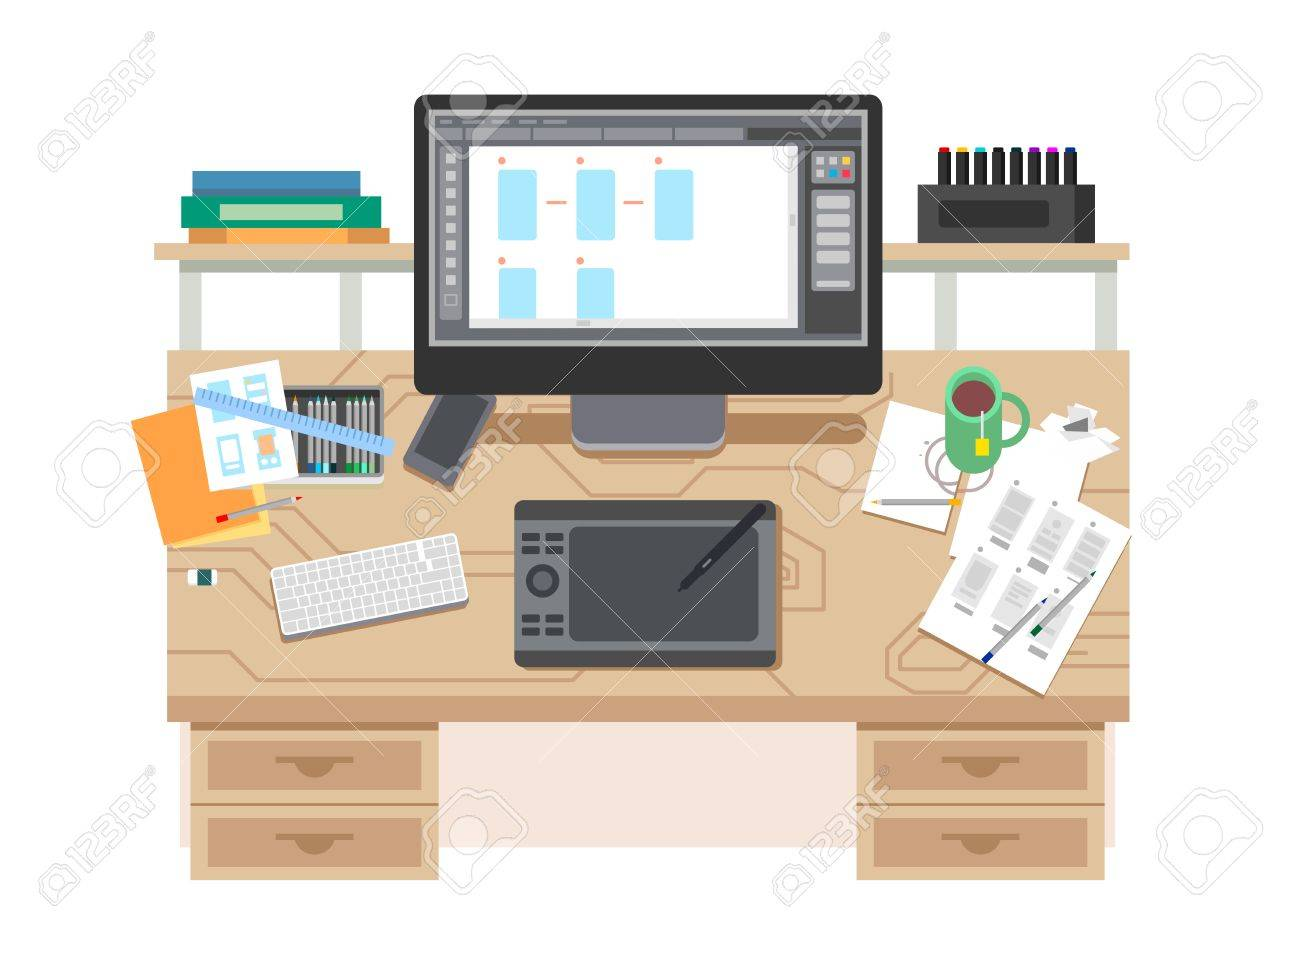 ui and ux app design workspace room and desk office designer place with